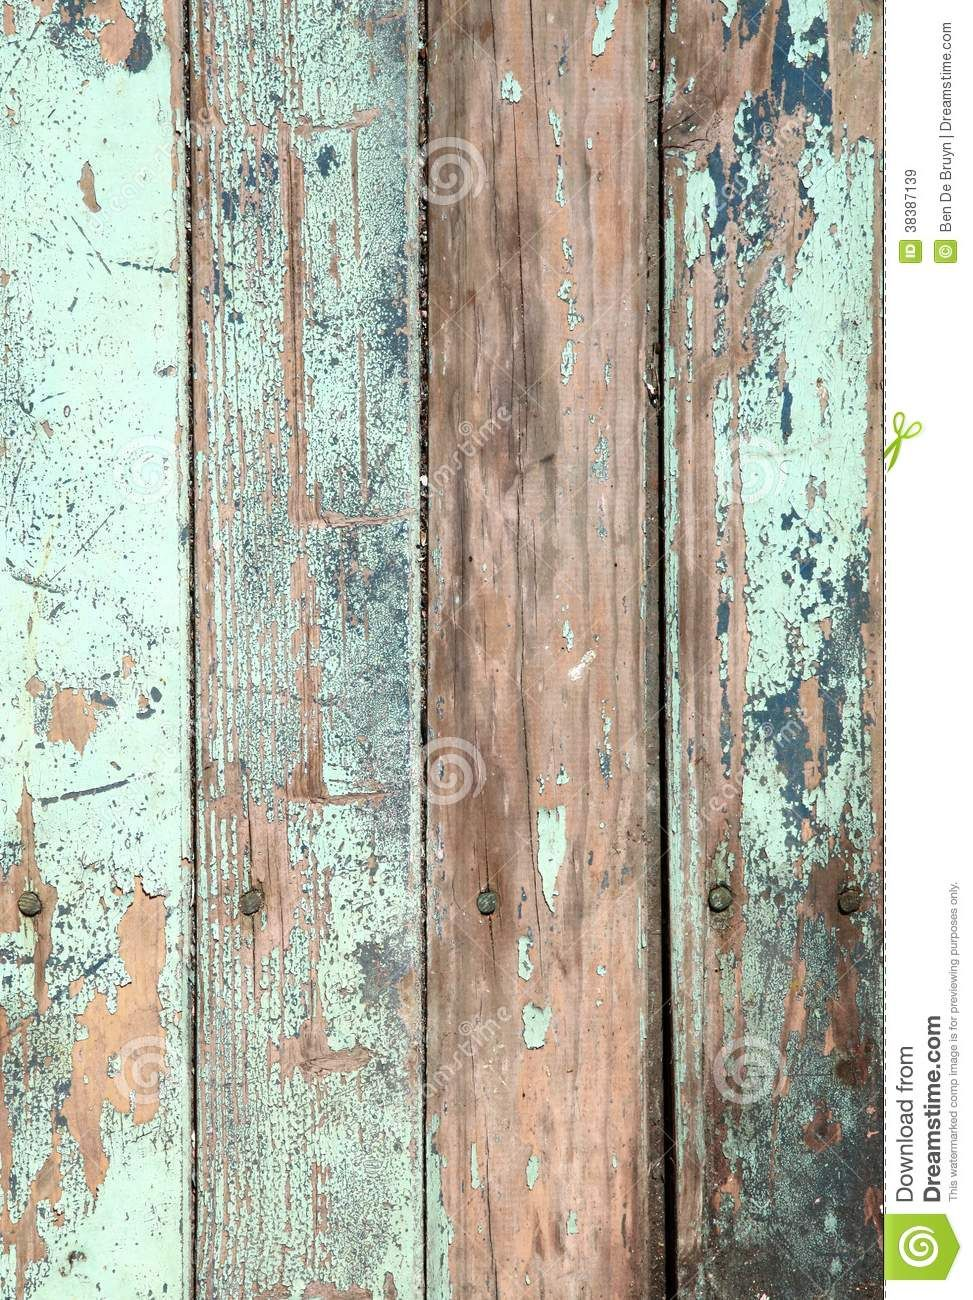 How to render a distressed wood paint effect google search wc pinterest google search Best paint for painting wood